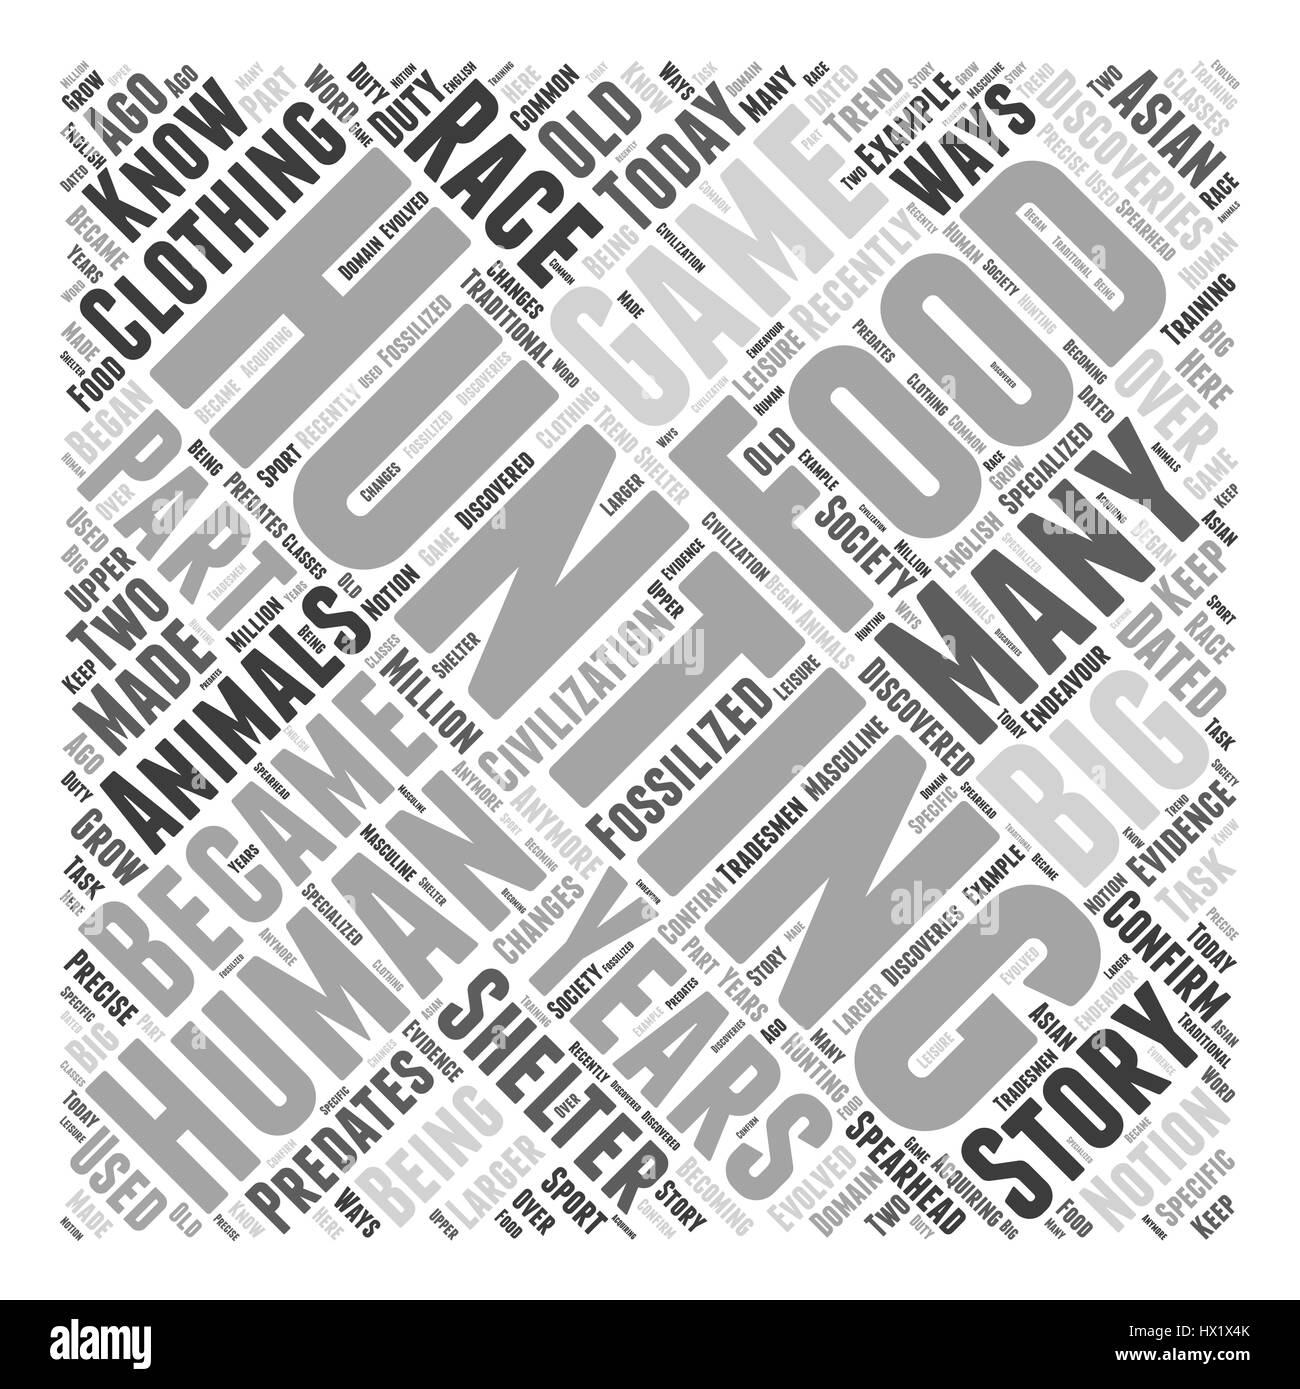 a history of hunting dlvy nicheblowercom Word Cloud Concept - Stock Vector